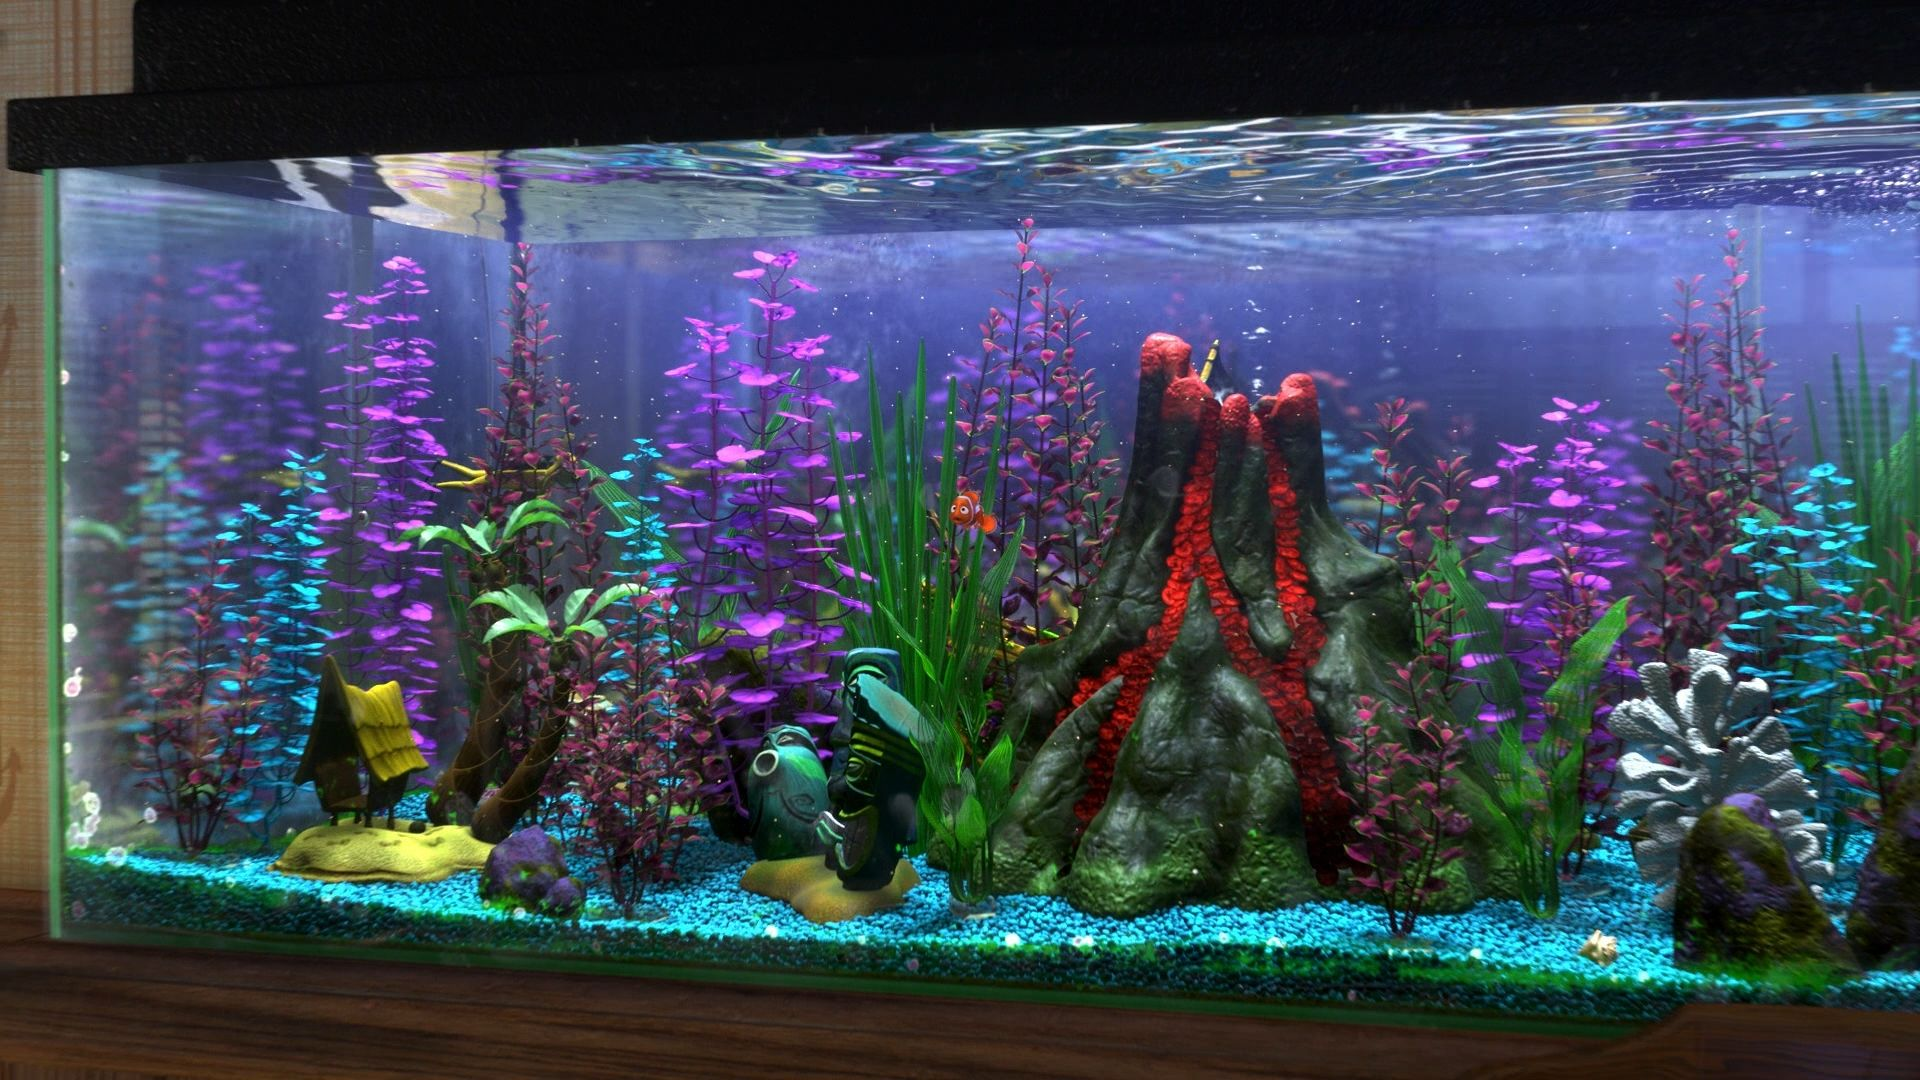 Fish in nemo aquarium - Finding Nemo Aquarium Hobby The Gnomon Workshop News